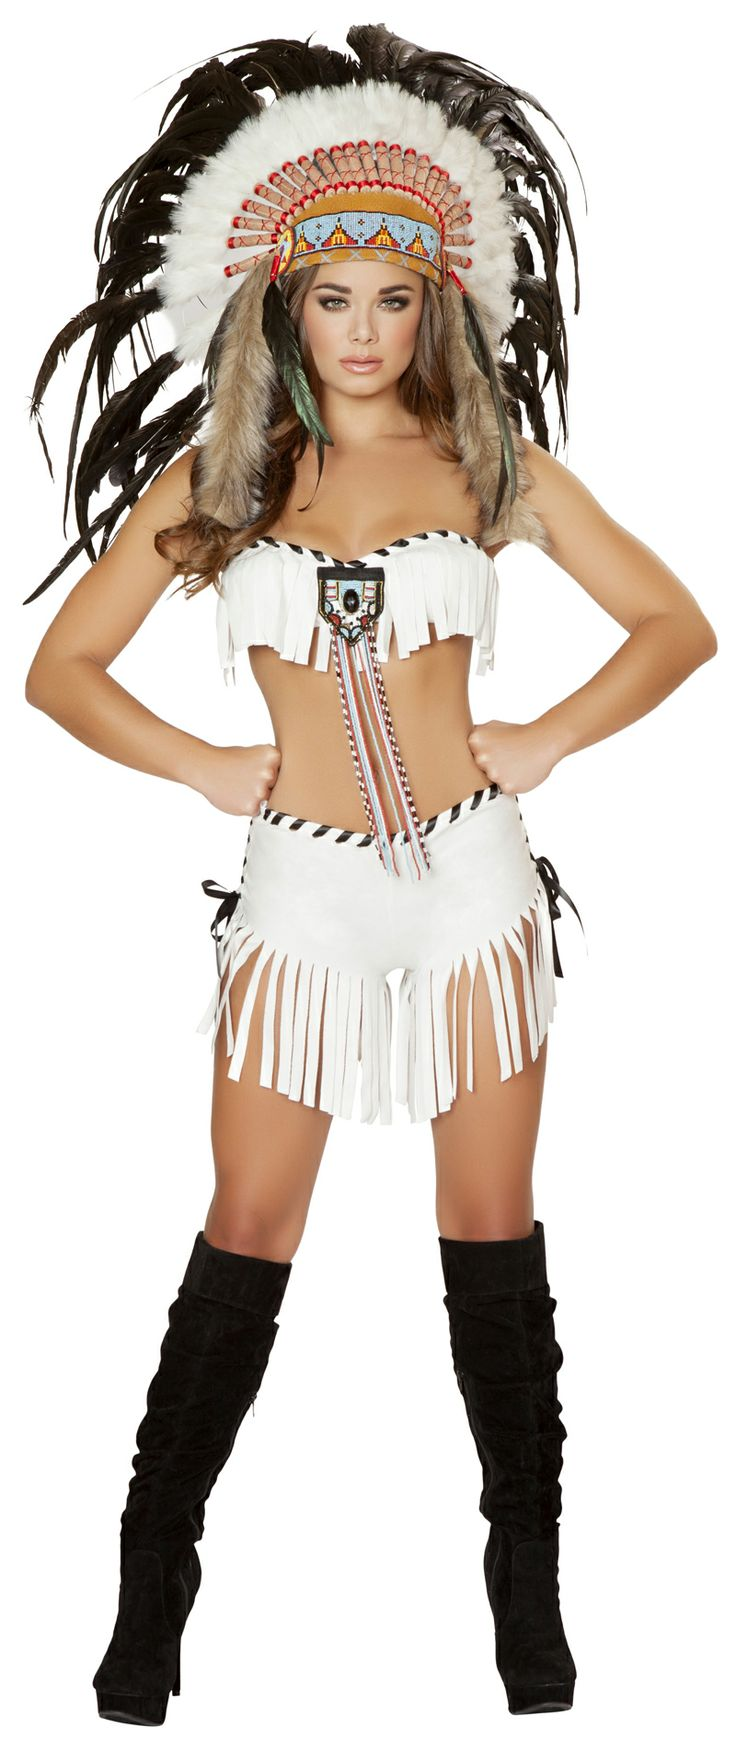 91 Best Costume Ideas Images On Pinterest  Night Out -5955